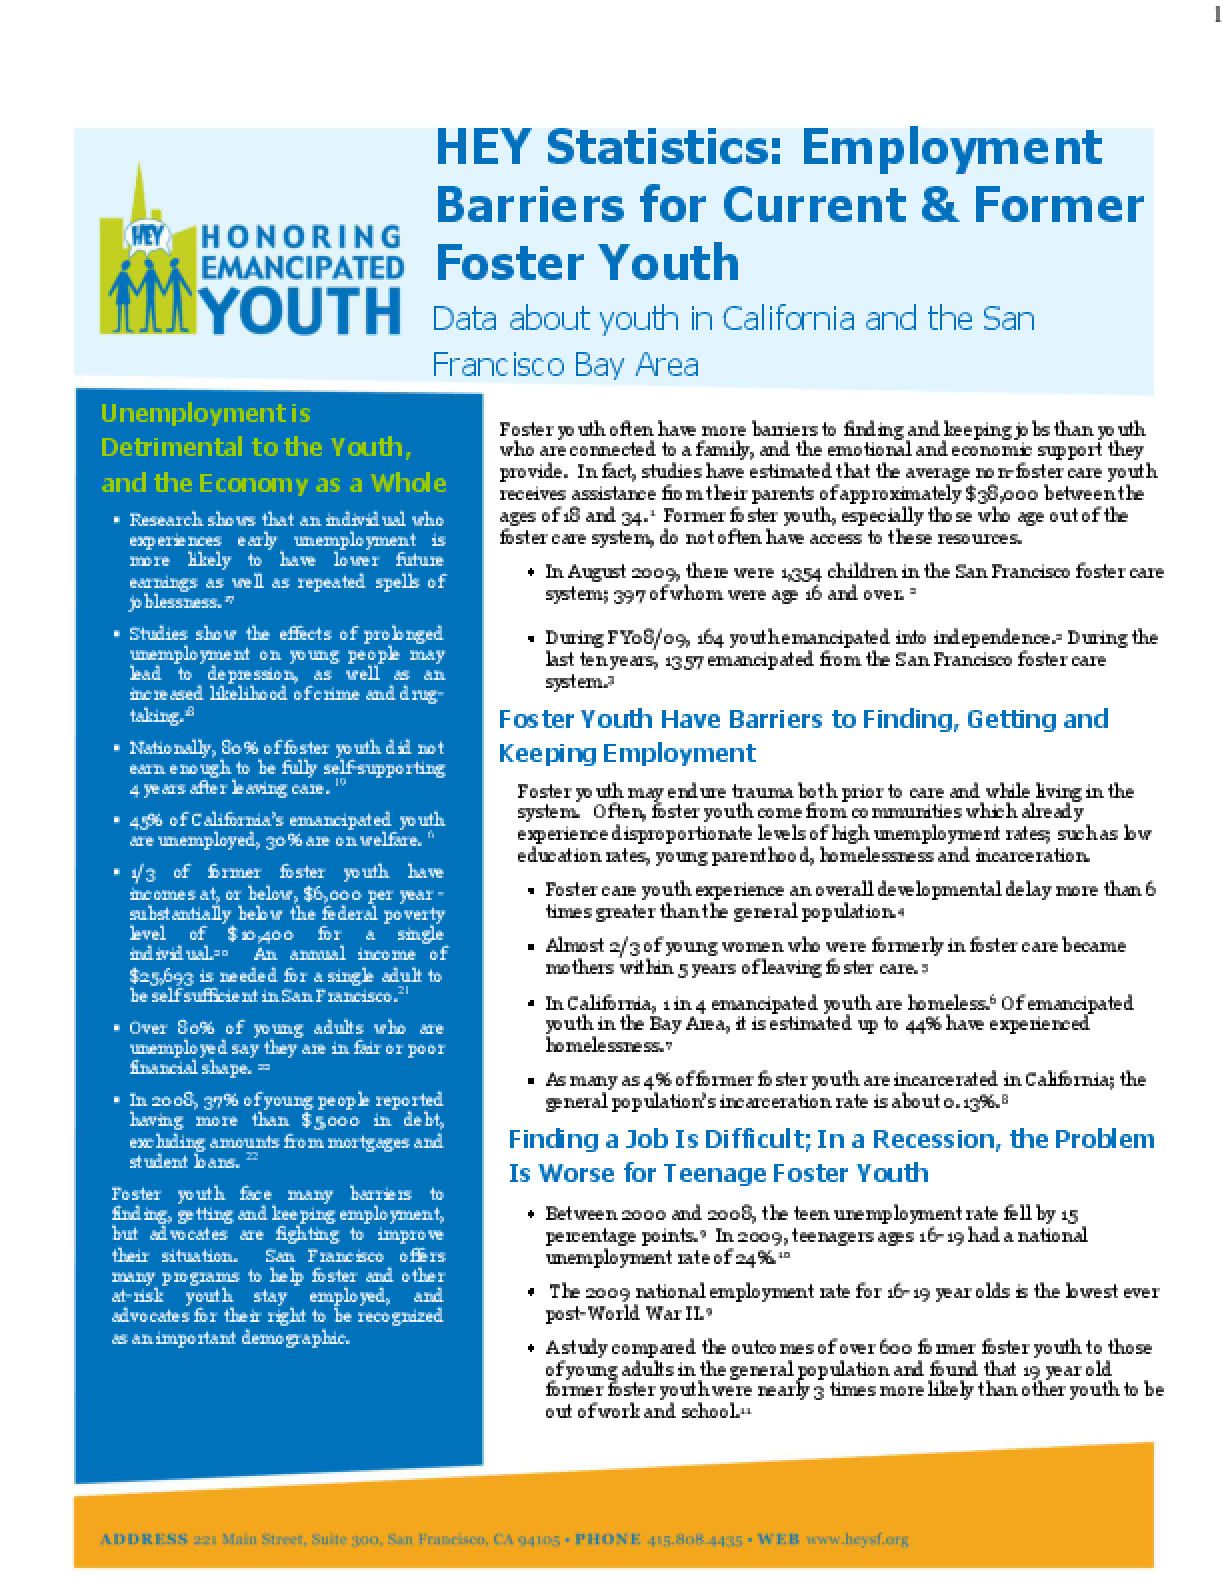 HEY Statistics: Employment Barriers for Current & Former Foster Youth